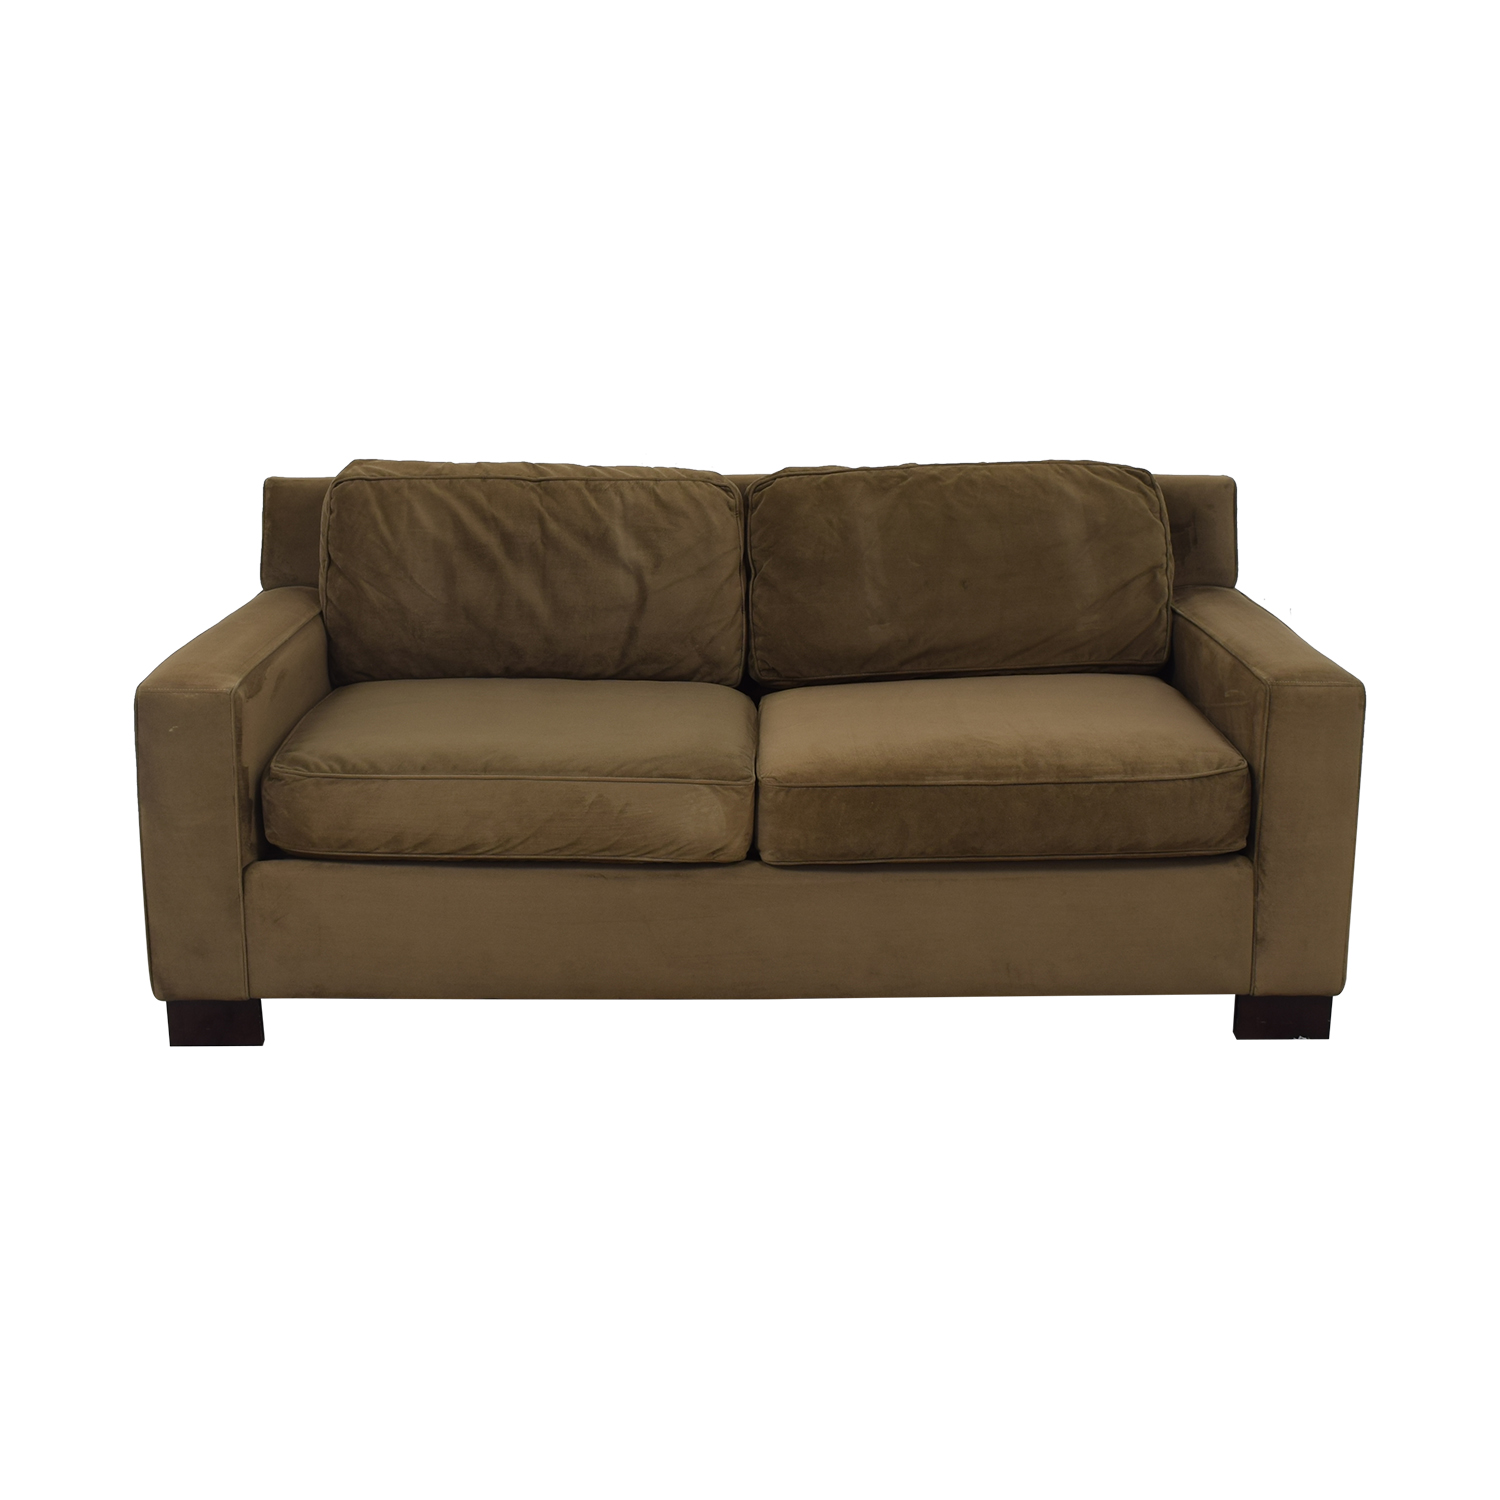 West Elm West Elm Goodwin Sofa dimensions